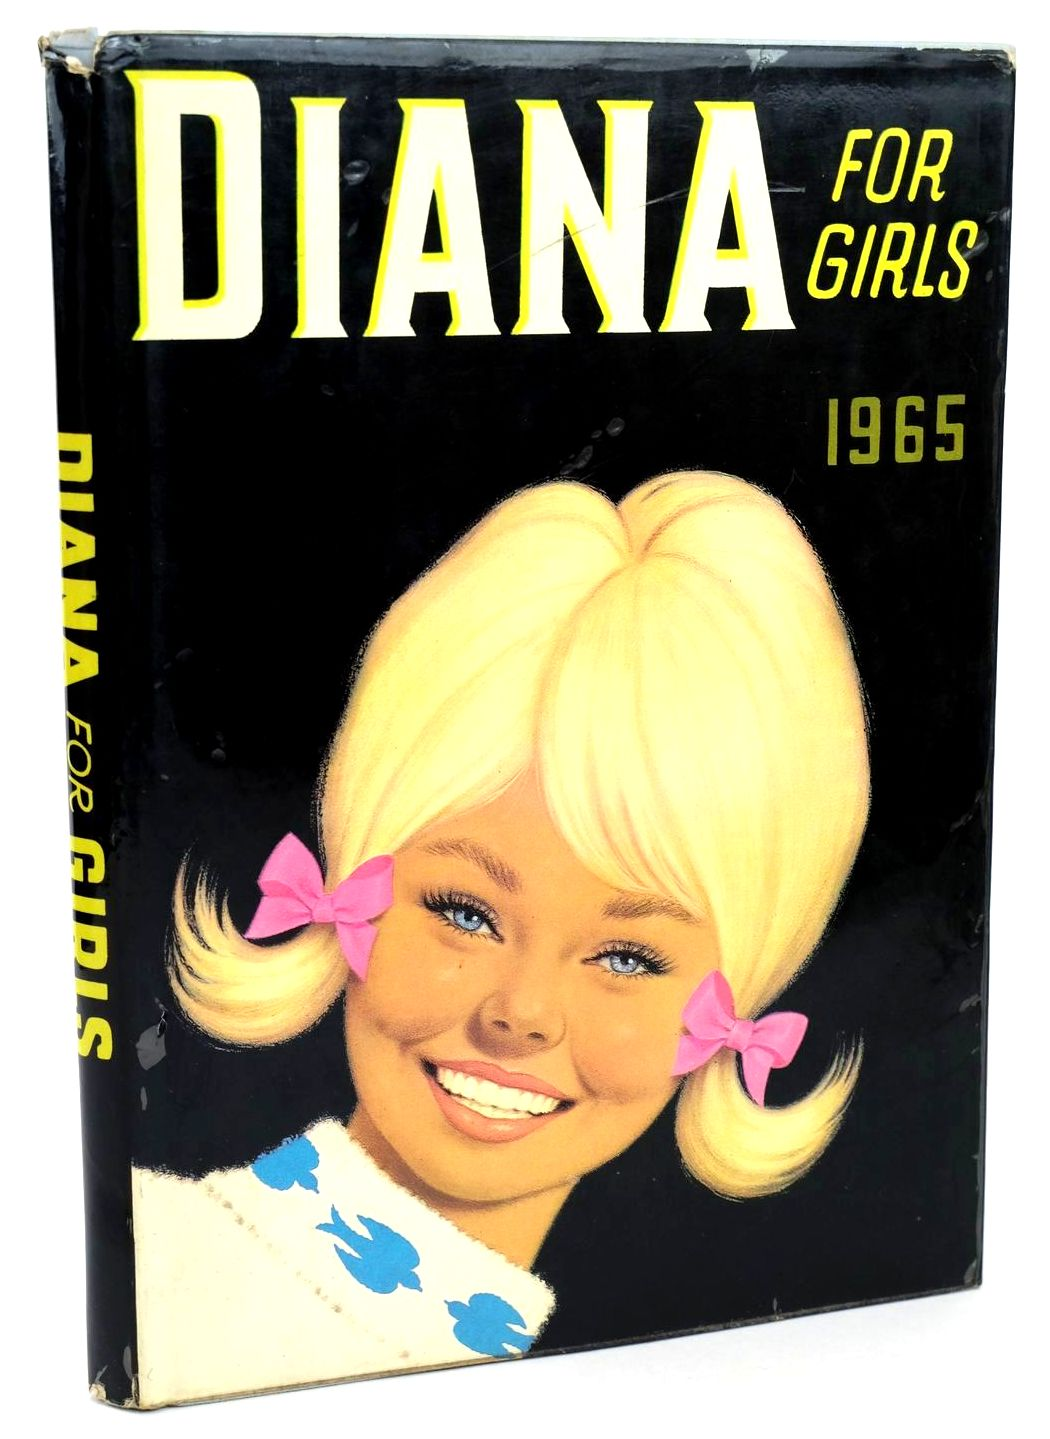 Photo of DIANA FOR GIRLS 1965 published by D.C. Thomson & Co Ltd. (STOCK CODE: 1318536)  for sale by Stella & Rose's Books